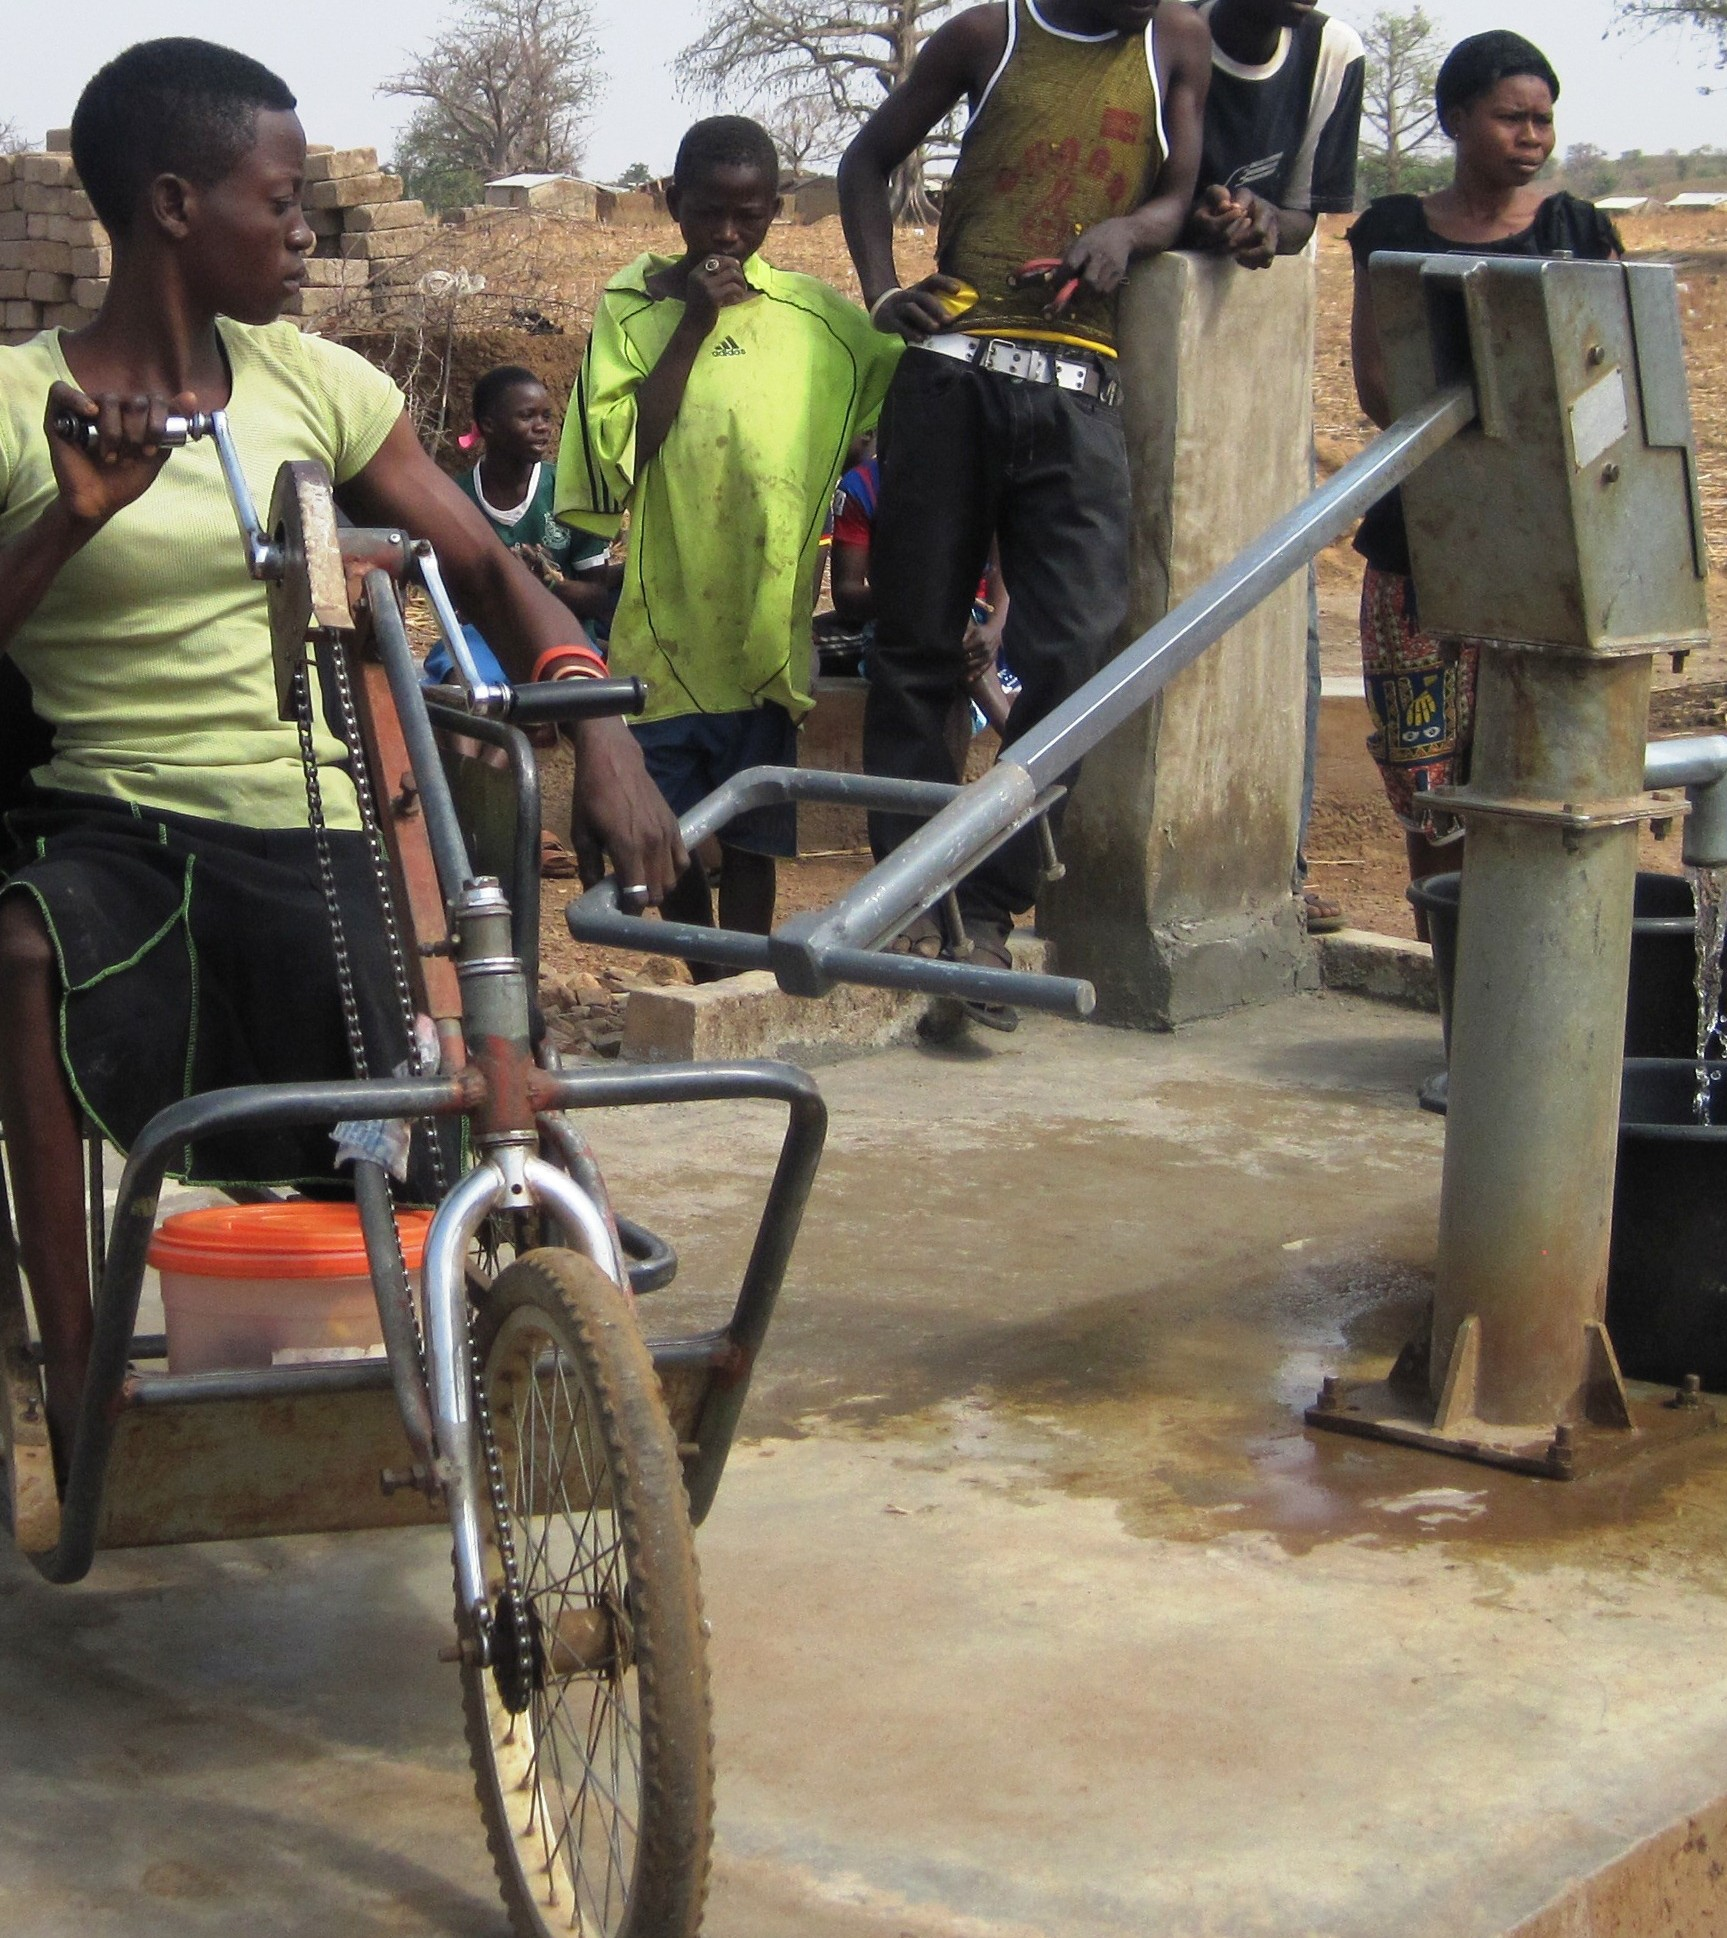 A woman using a tricycle operates a lengthened pump handle